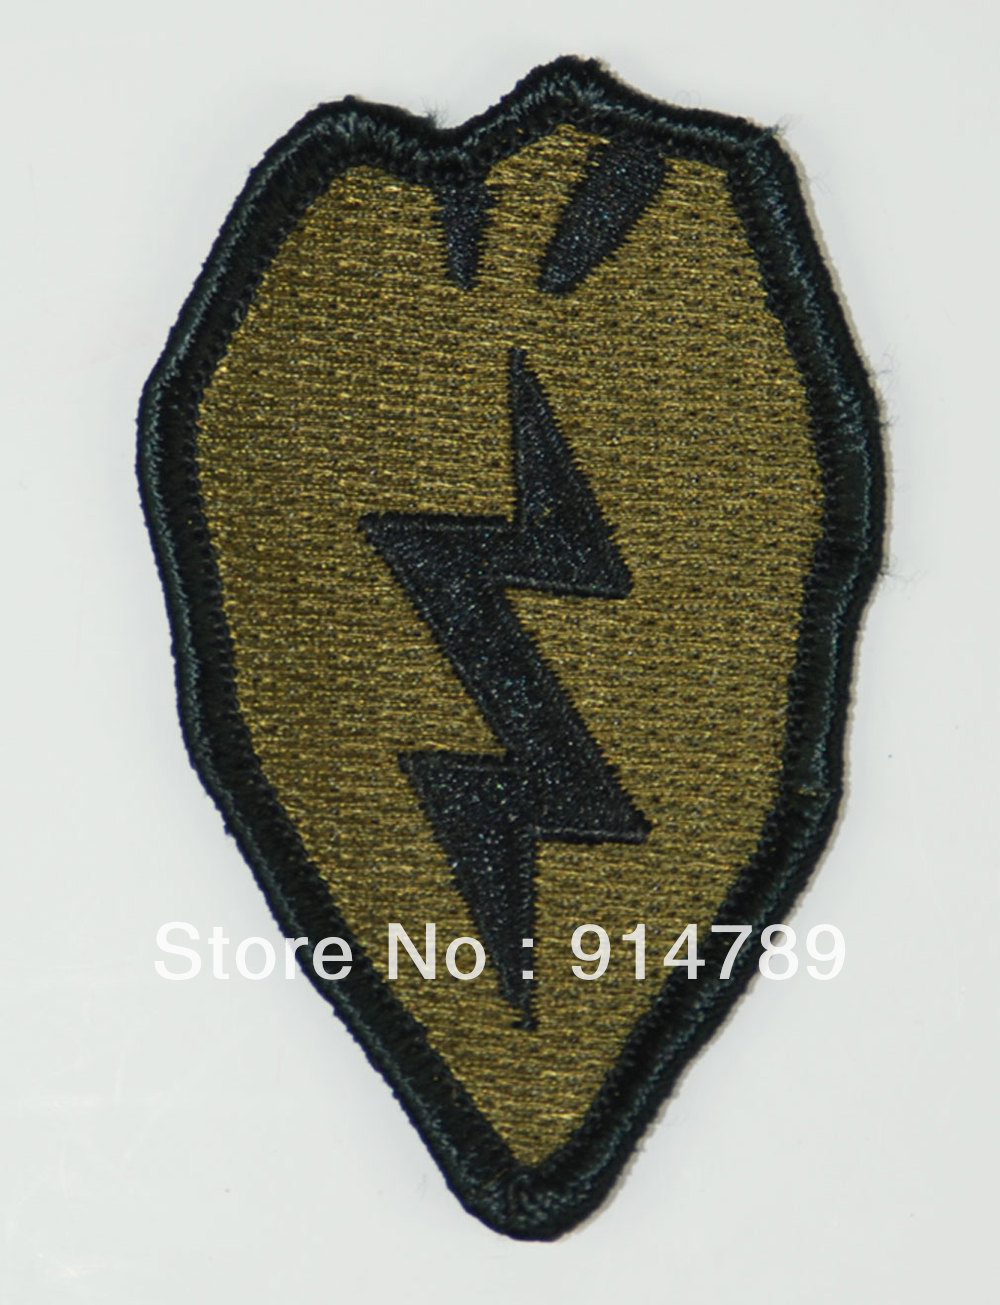 VIETNAM WAR US TWILL PATCH 25TH INFANTRY DIVISION-32653